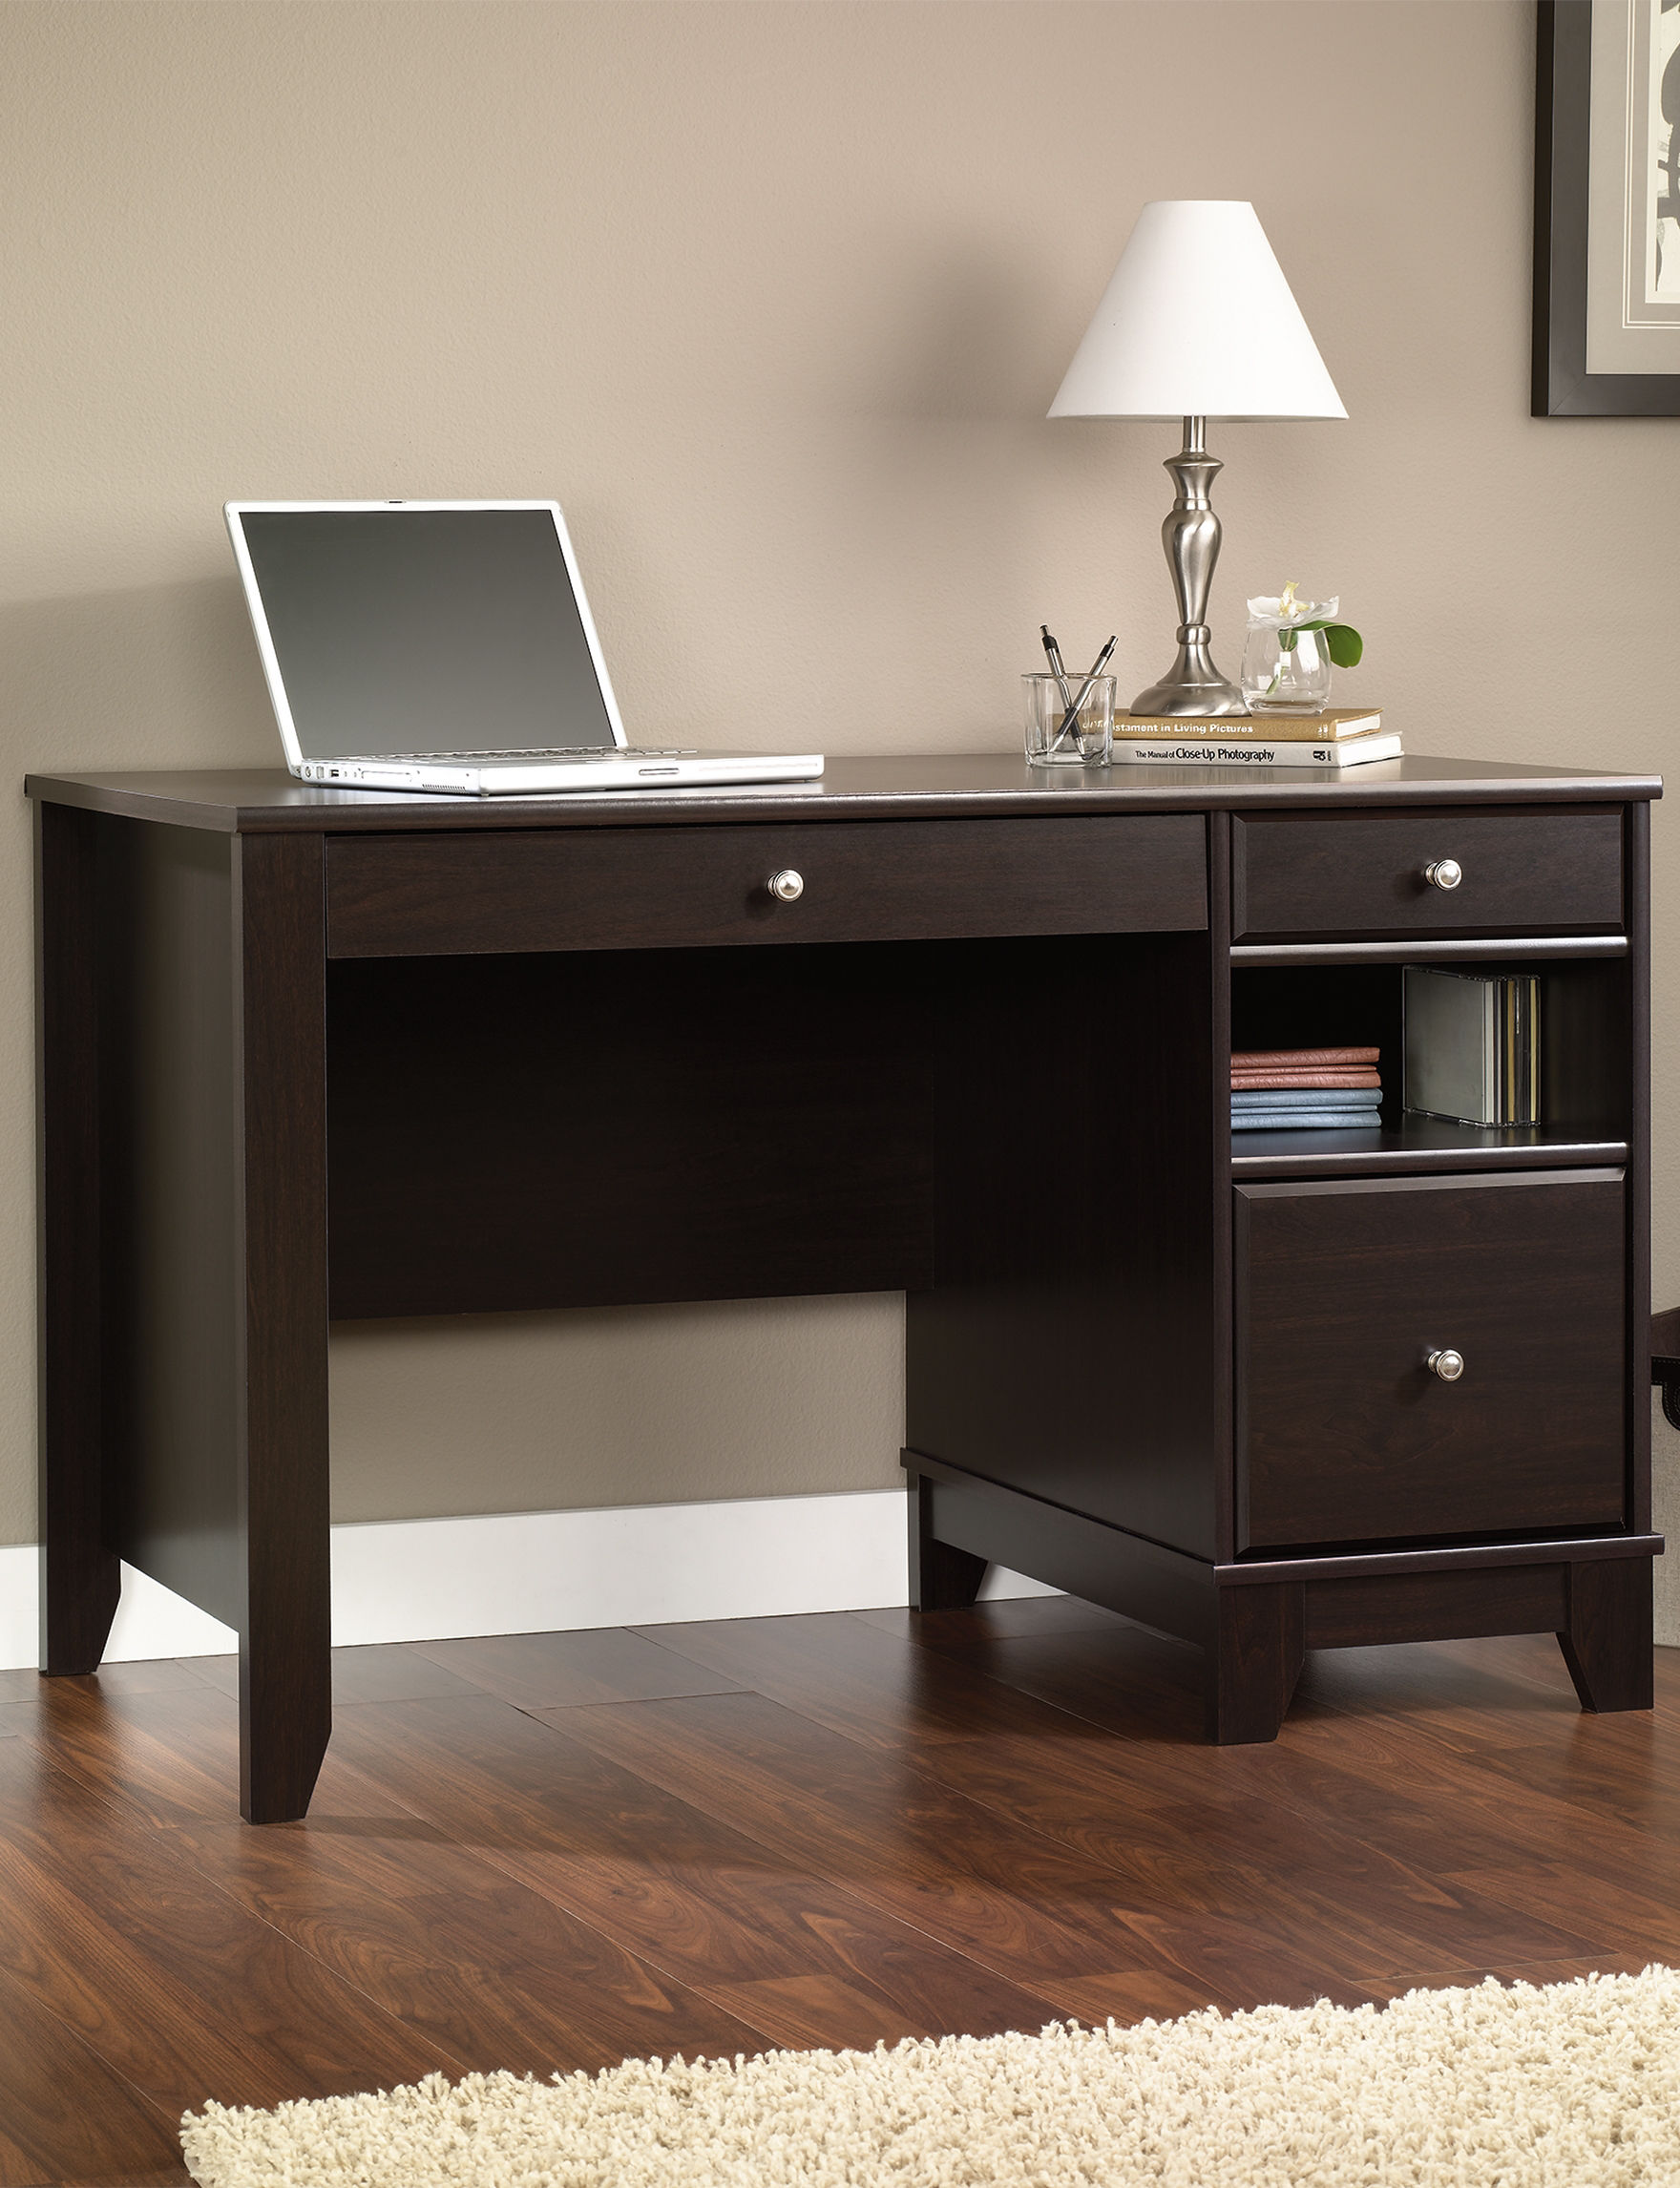 Sauder Chocolate Desks Home Office Furniture